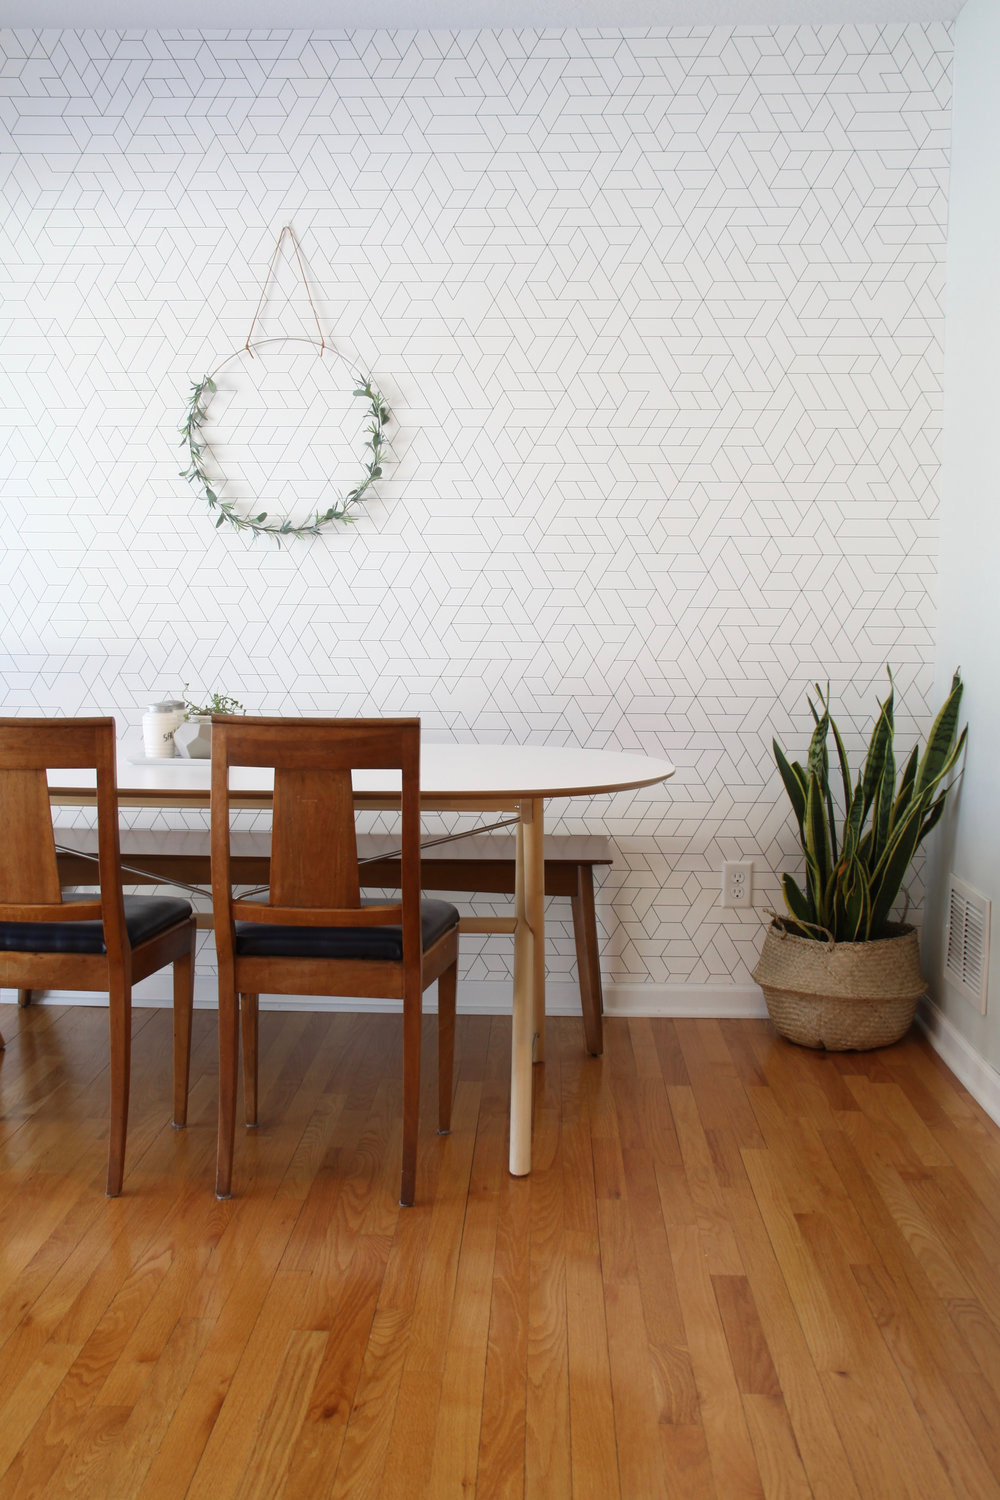 IKEA SLAHULT Dining table with graphic wallpaper and midcentury chairs